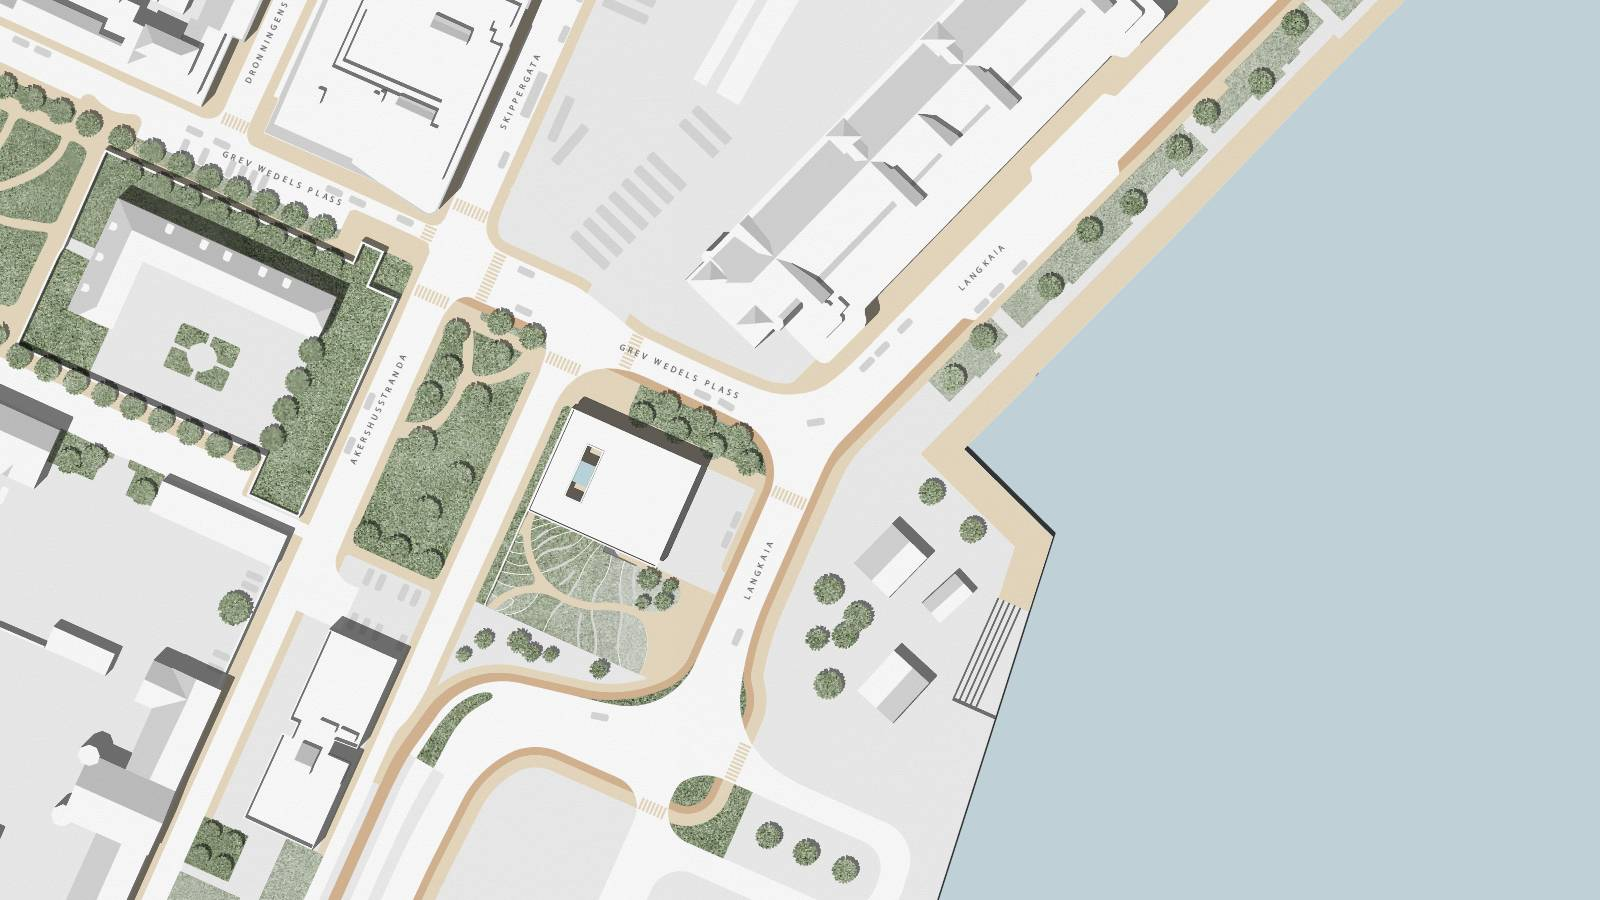 SITE WITH ROOF PLAN - Oslo Fire Station - SPOL Architects